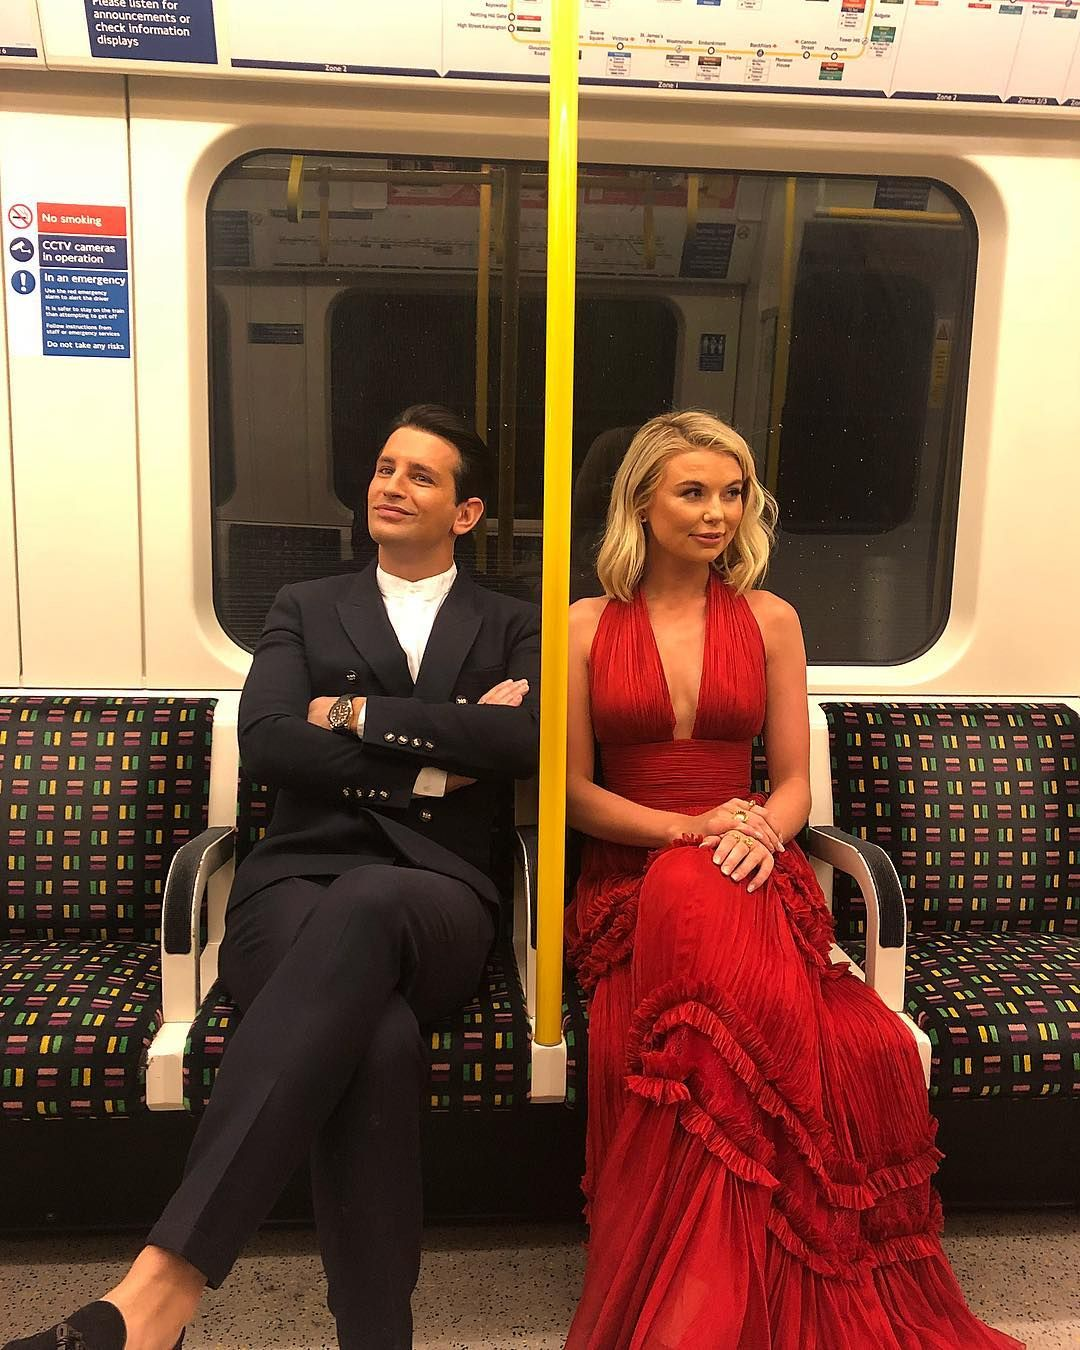 Image may contain: Made in Chelsea cast are actually from, Made in Chelsea, cast, place of birth, from, Ollie Locke, toff, Premiere, Gown, Robe, Evening Dress, Train, Transportation, Vehicle, Fashion, Clothing, Apparel, Human, Person